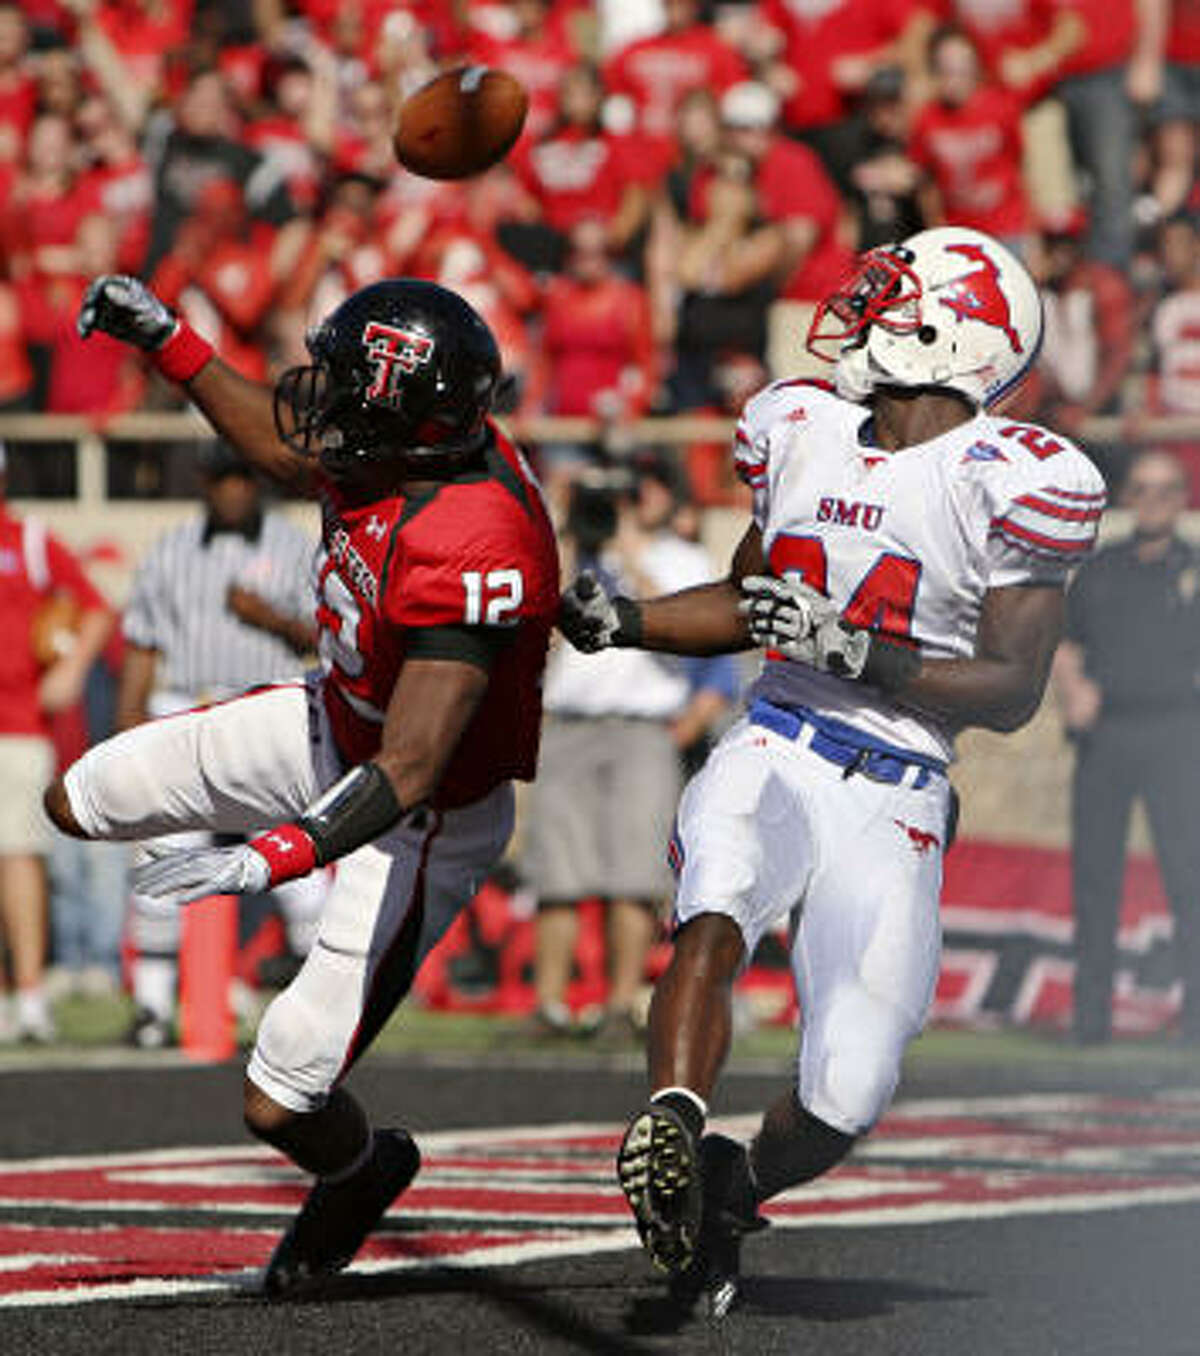 Texas Tech cornerback D.J. Johnson (left) breaks up a pass meant for Southern Methodist wide receiver Aldrick Robinson.